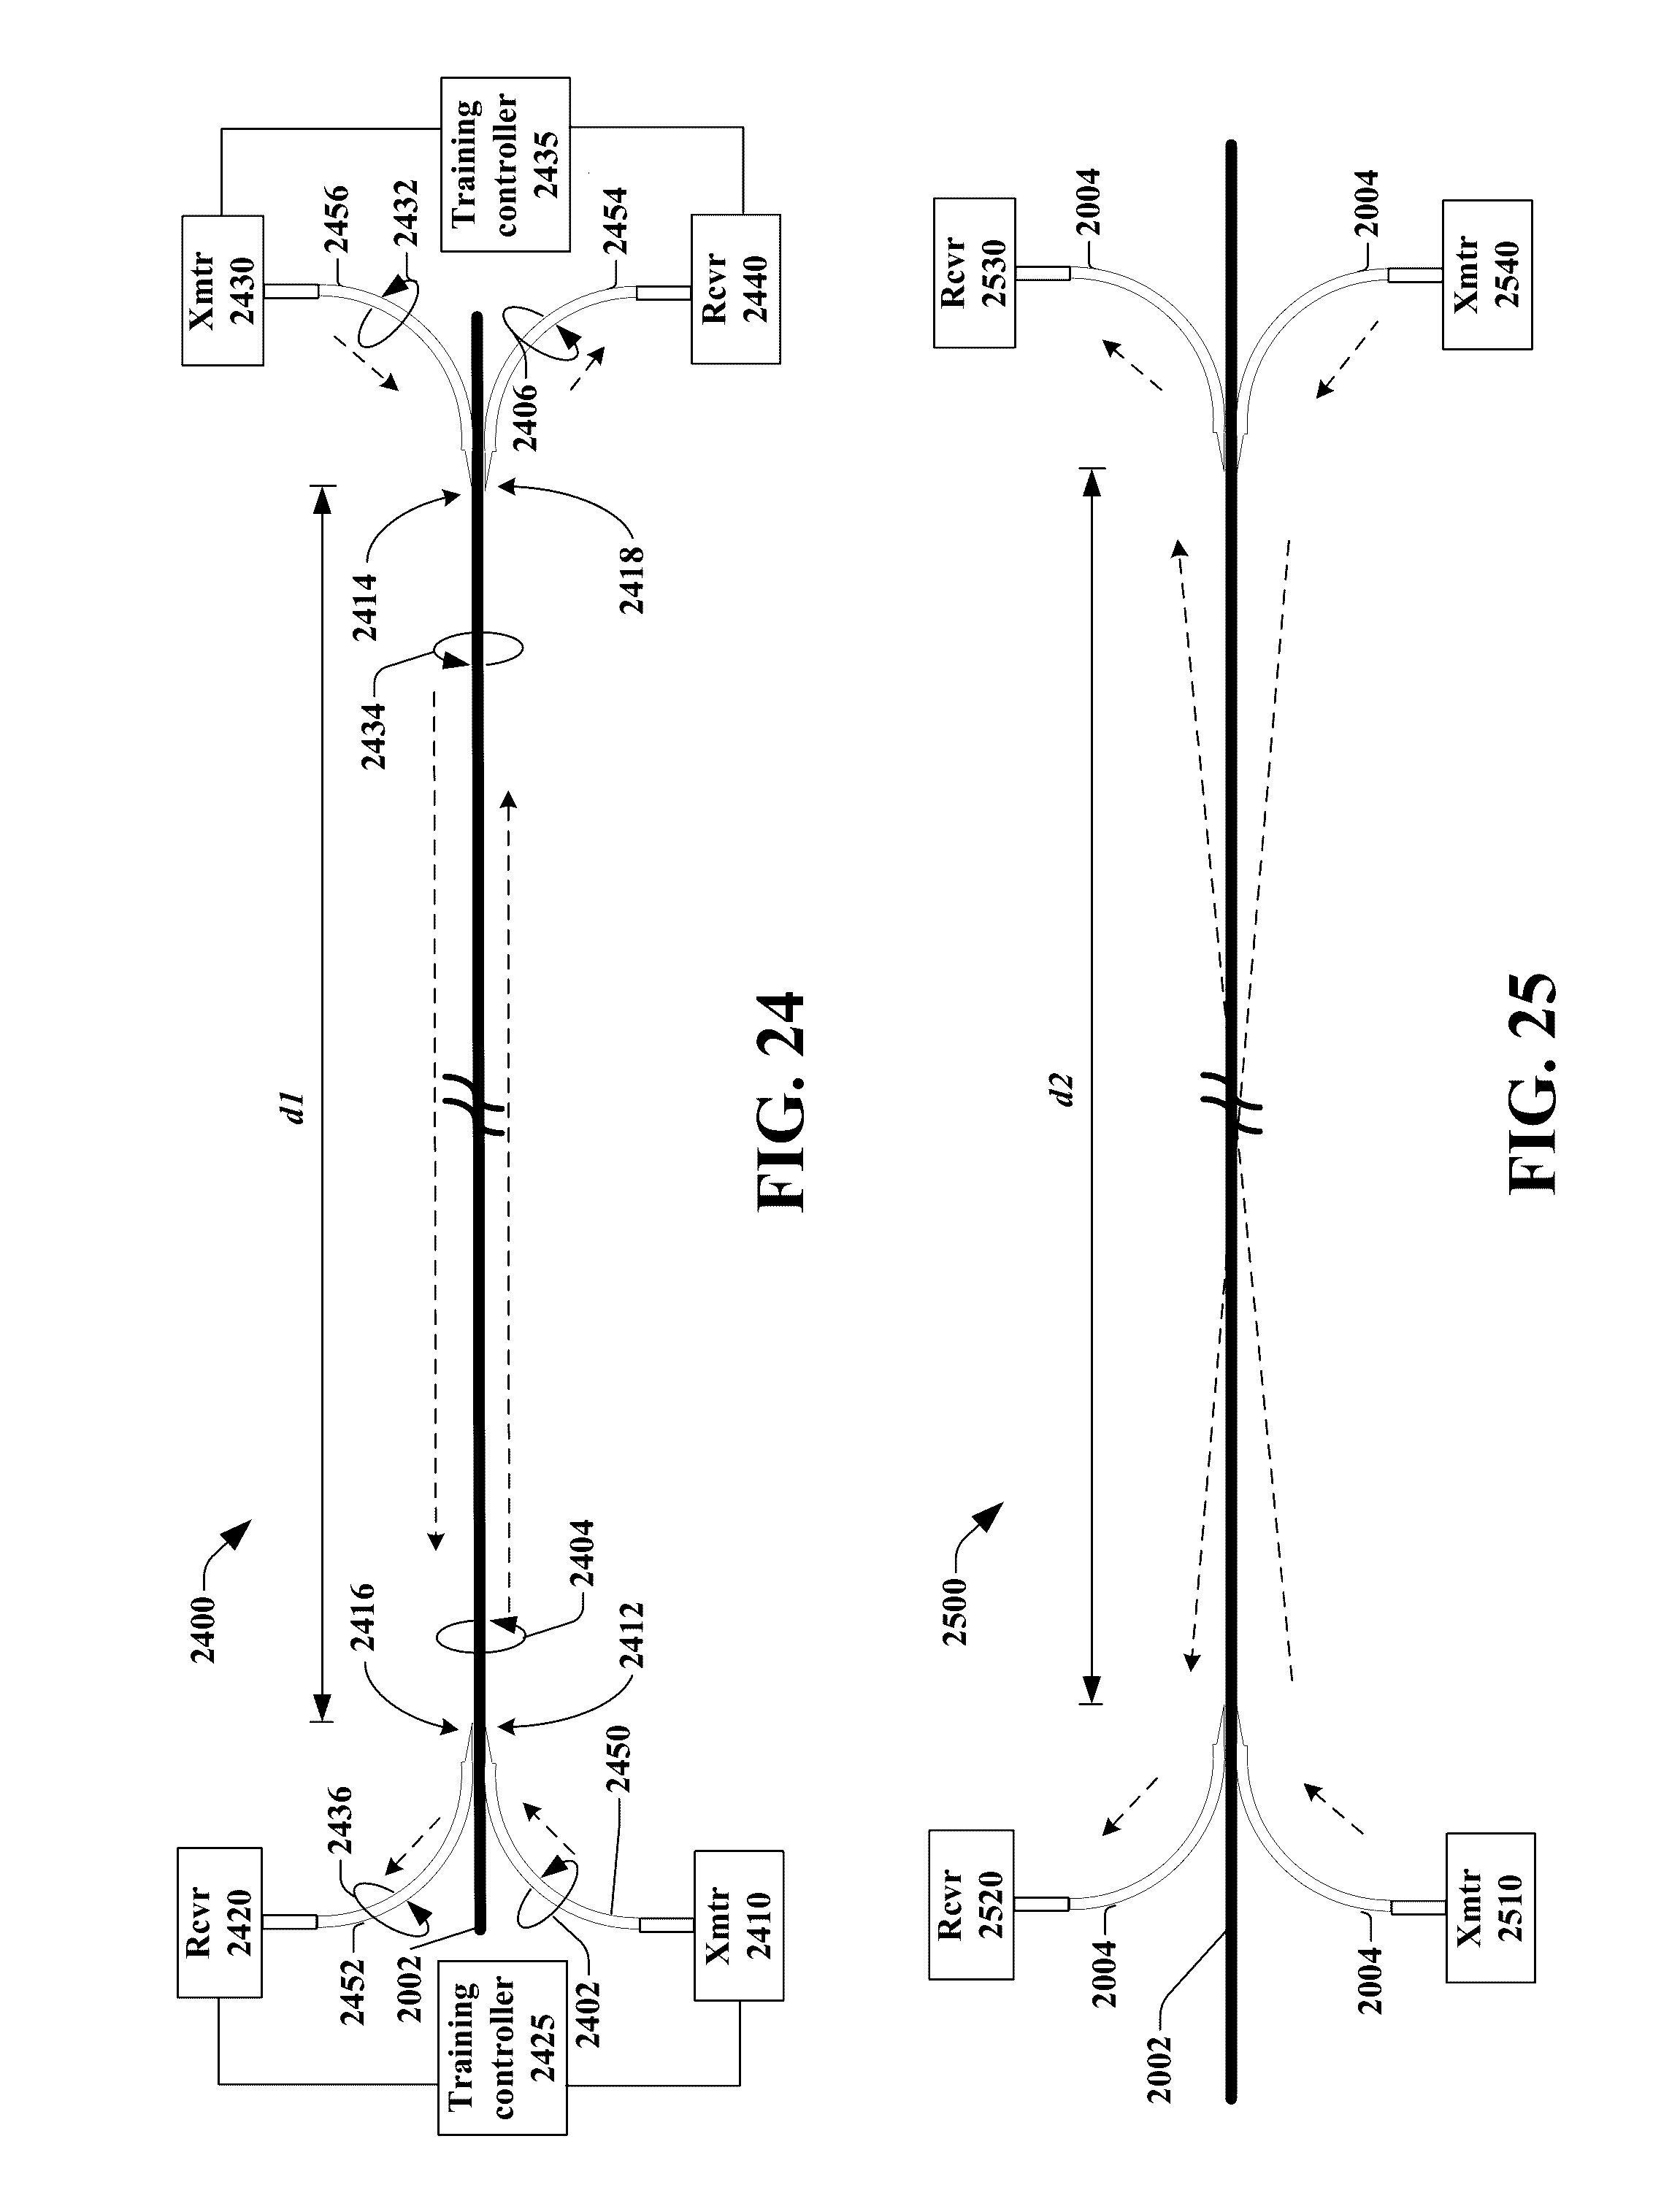 us9653770b2 guided wave coupler coupling module and methods for rh patents google com